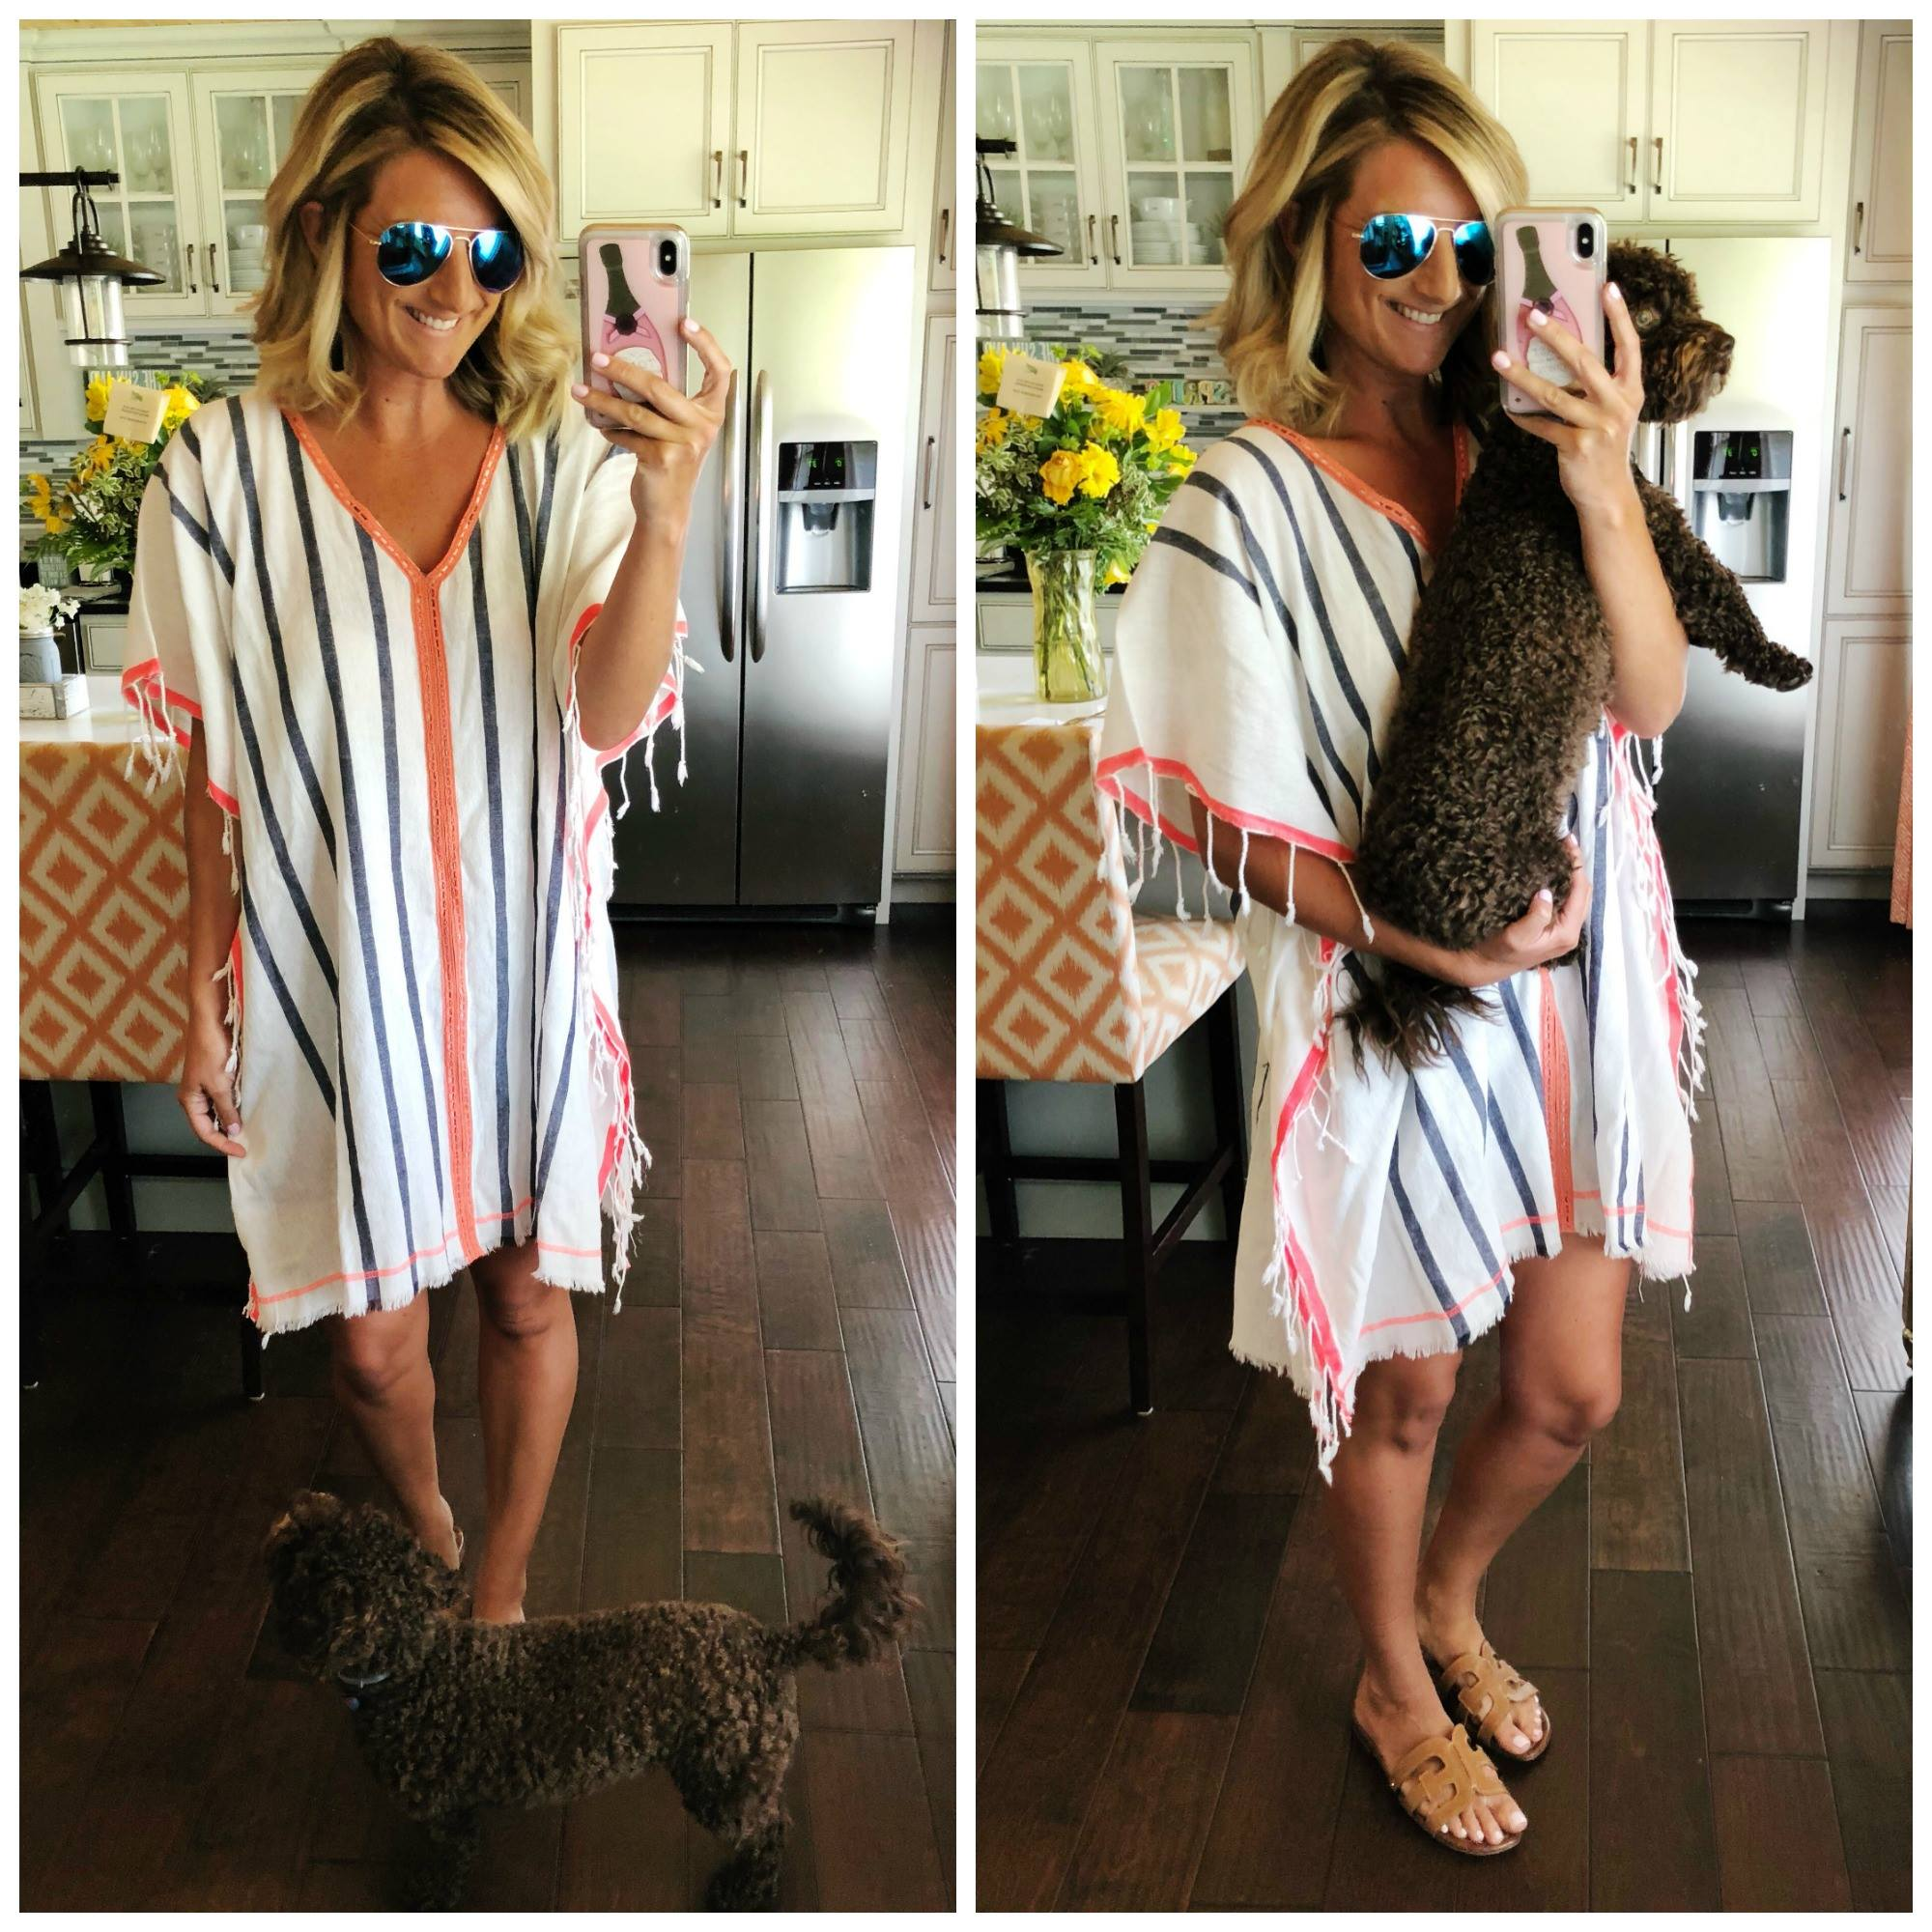 Summer Swimsuit Cover Up // Summer Fashion // Affordable Swimsuit Cover up // Beach Cover Up